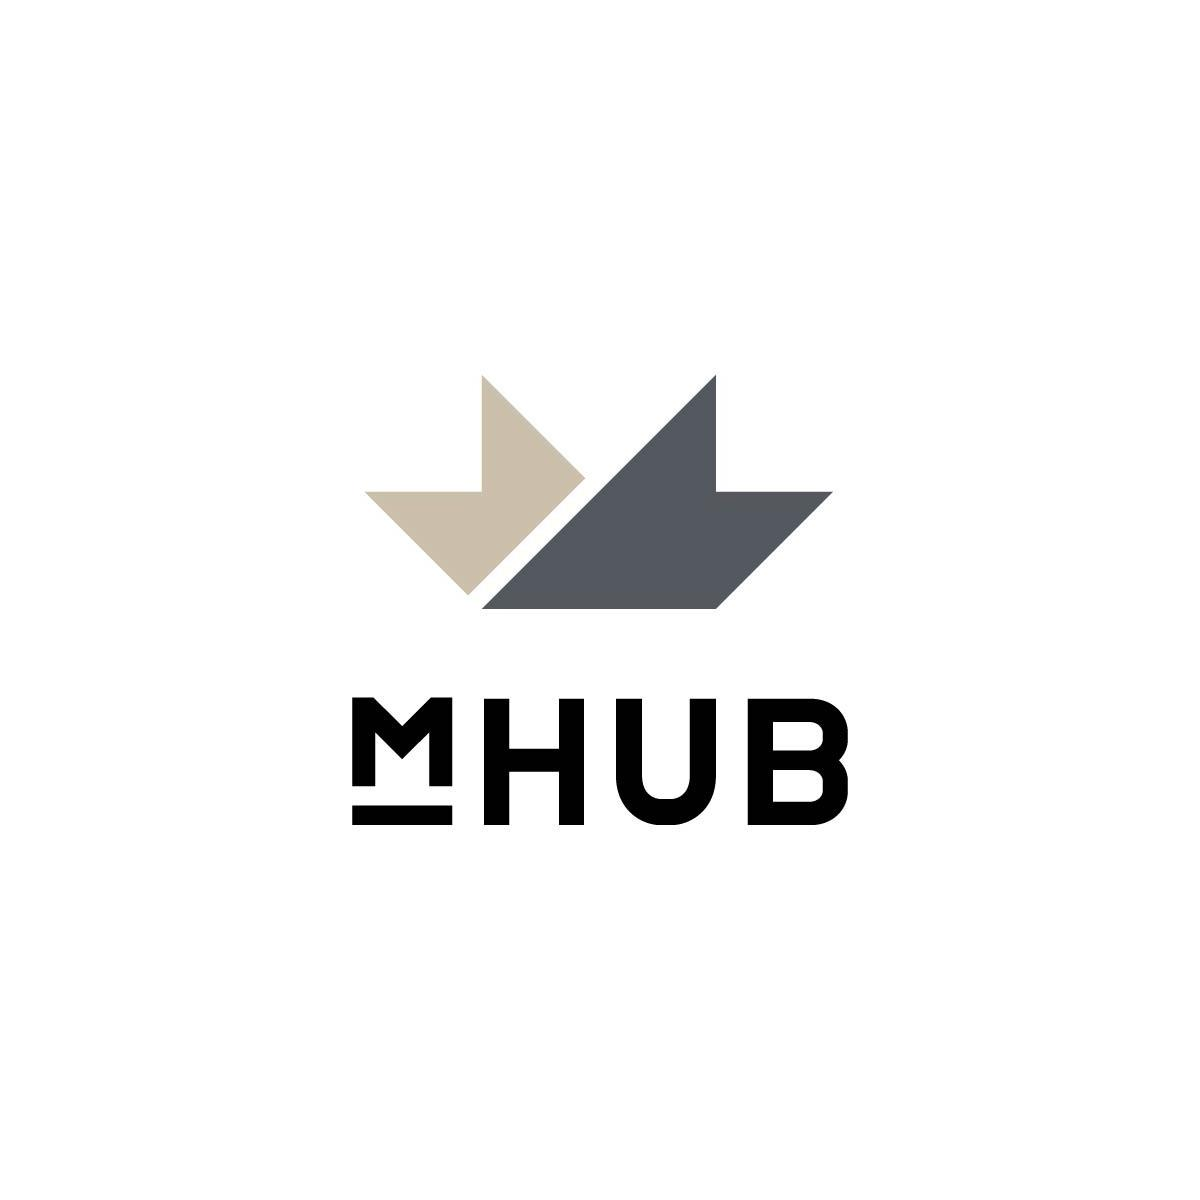 mHUB Receives $1.3 Million EDA Grant to Scale Outsourced Innovation Practice for SMEs